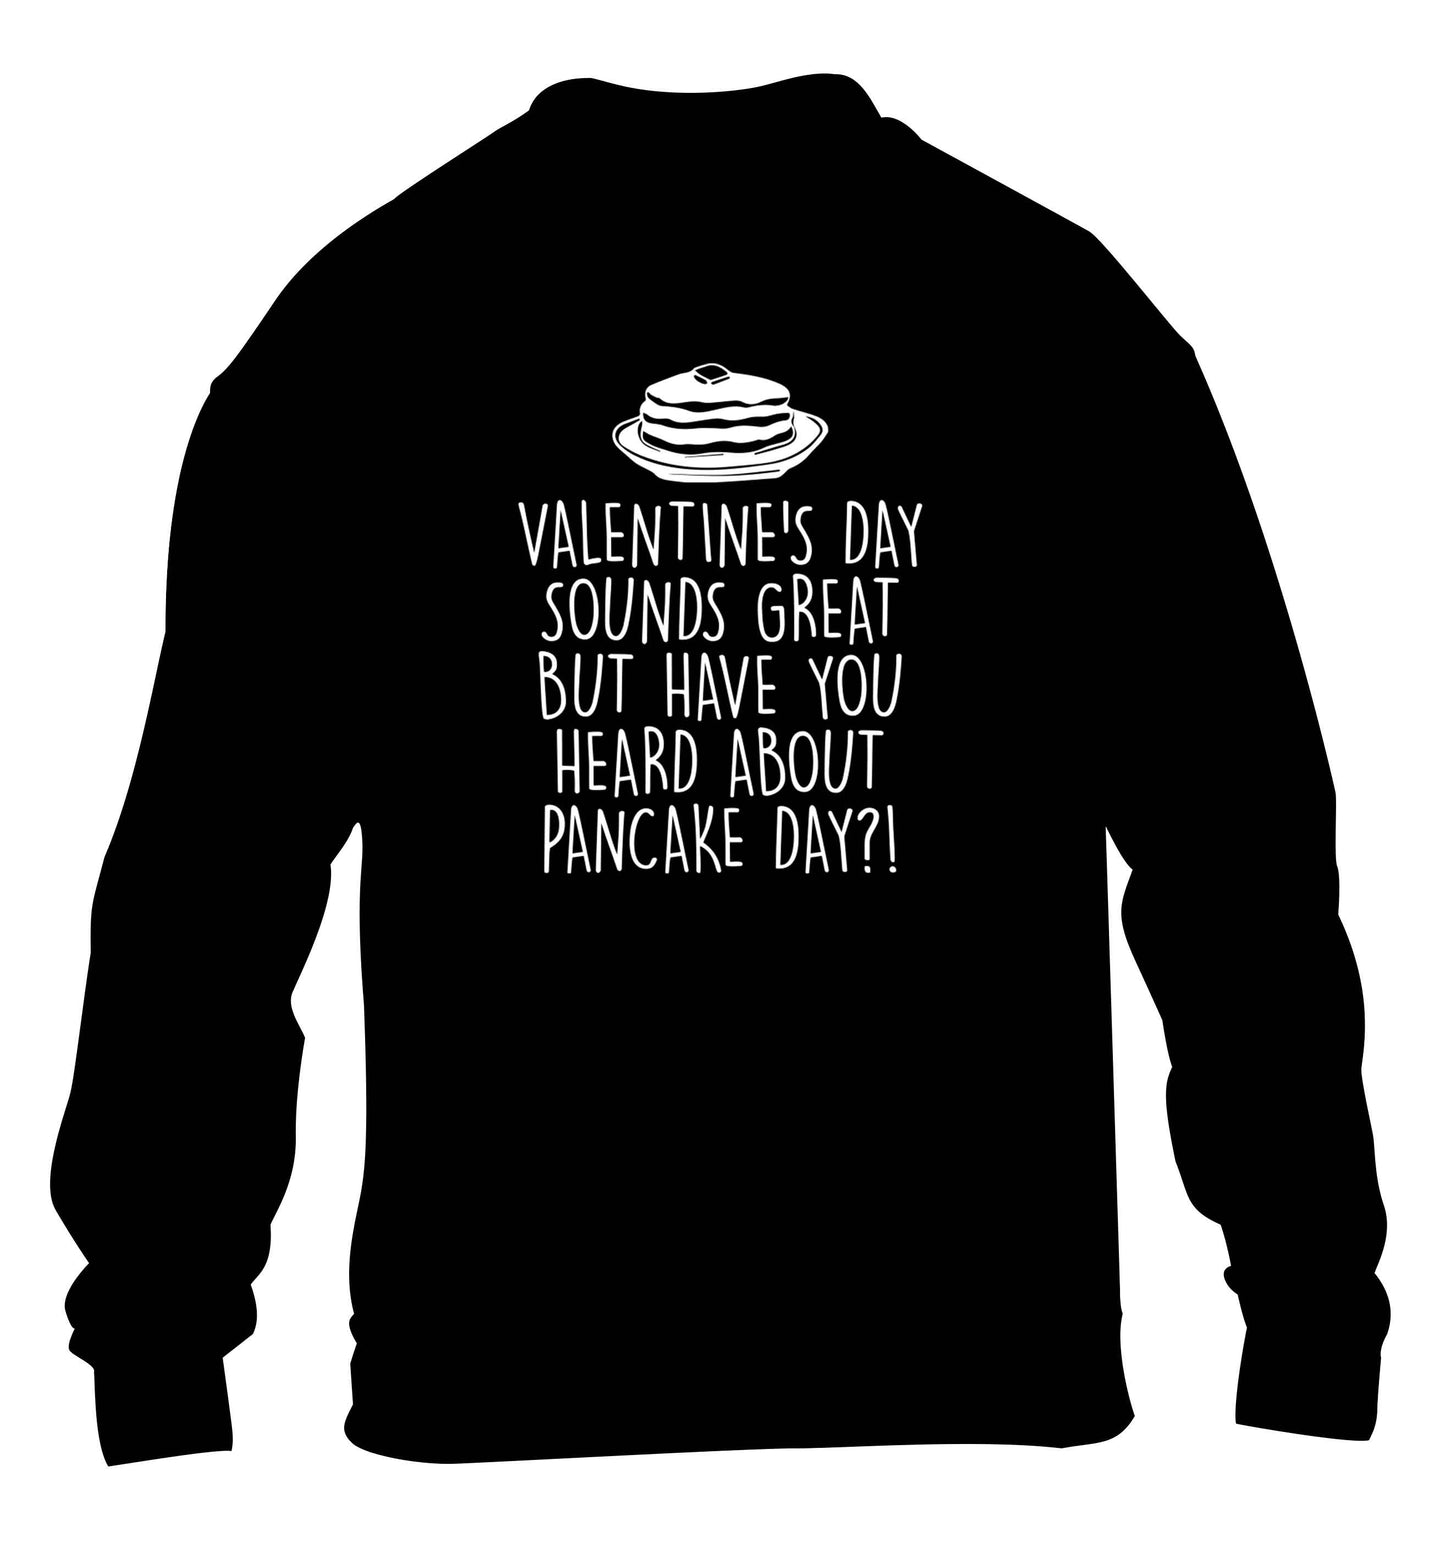 Valentine's day sounds great but have you heard about pancake day?! children's black sweater 12-13 Years